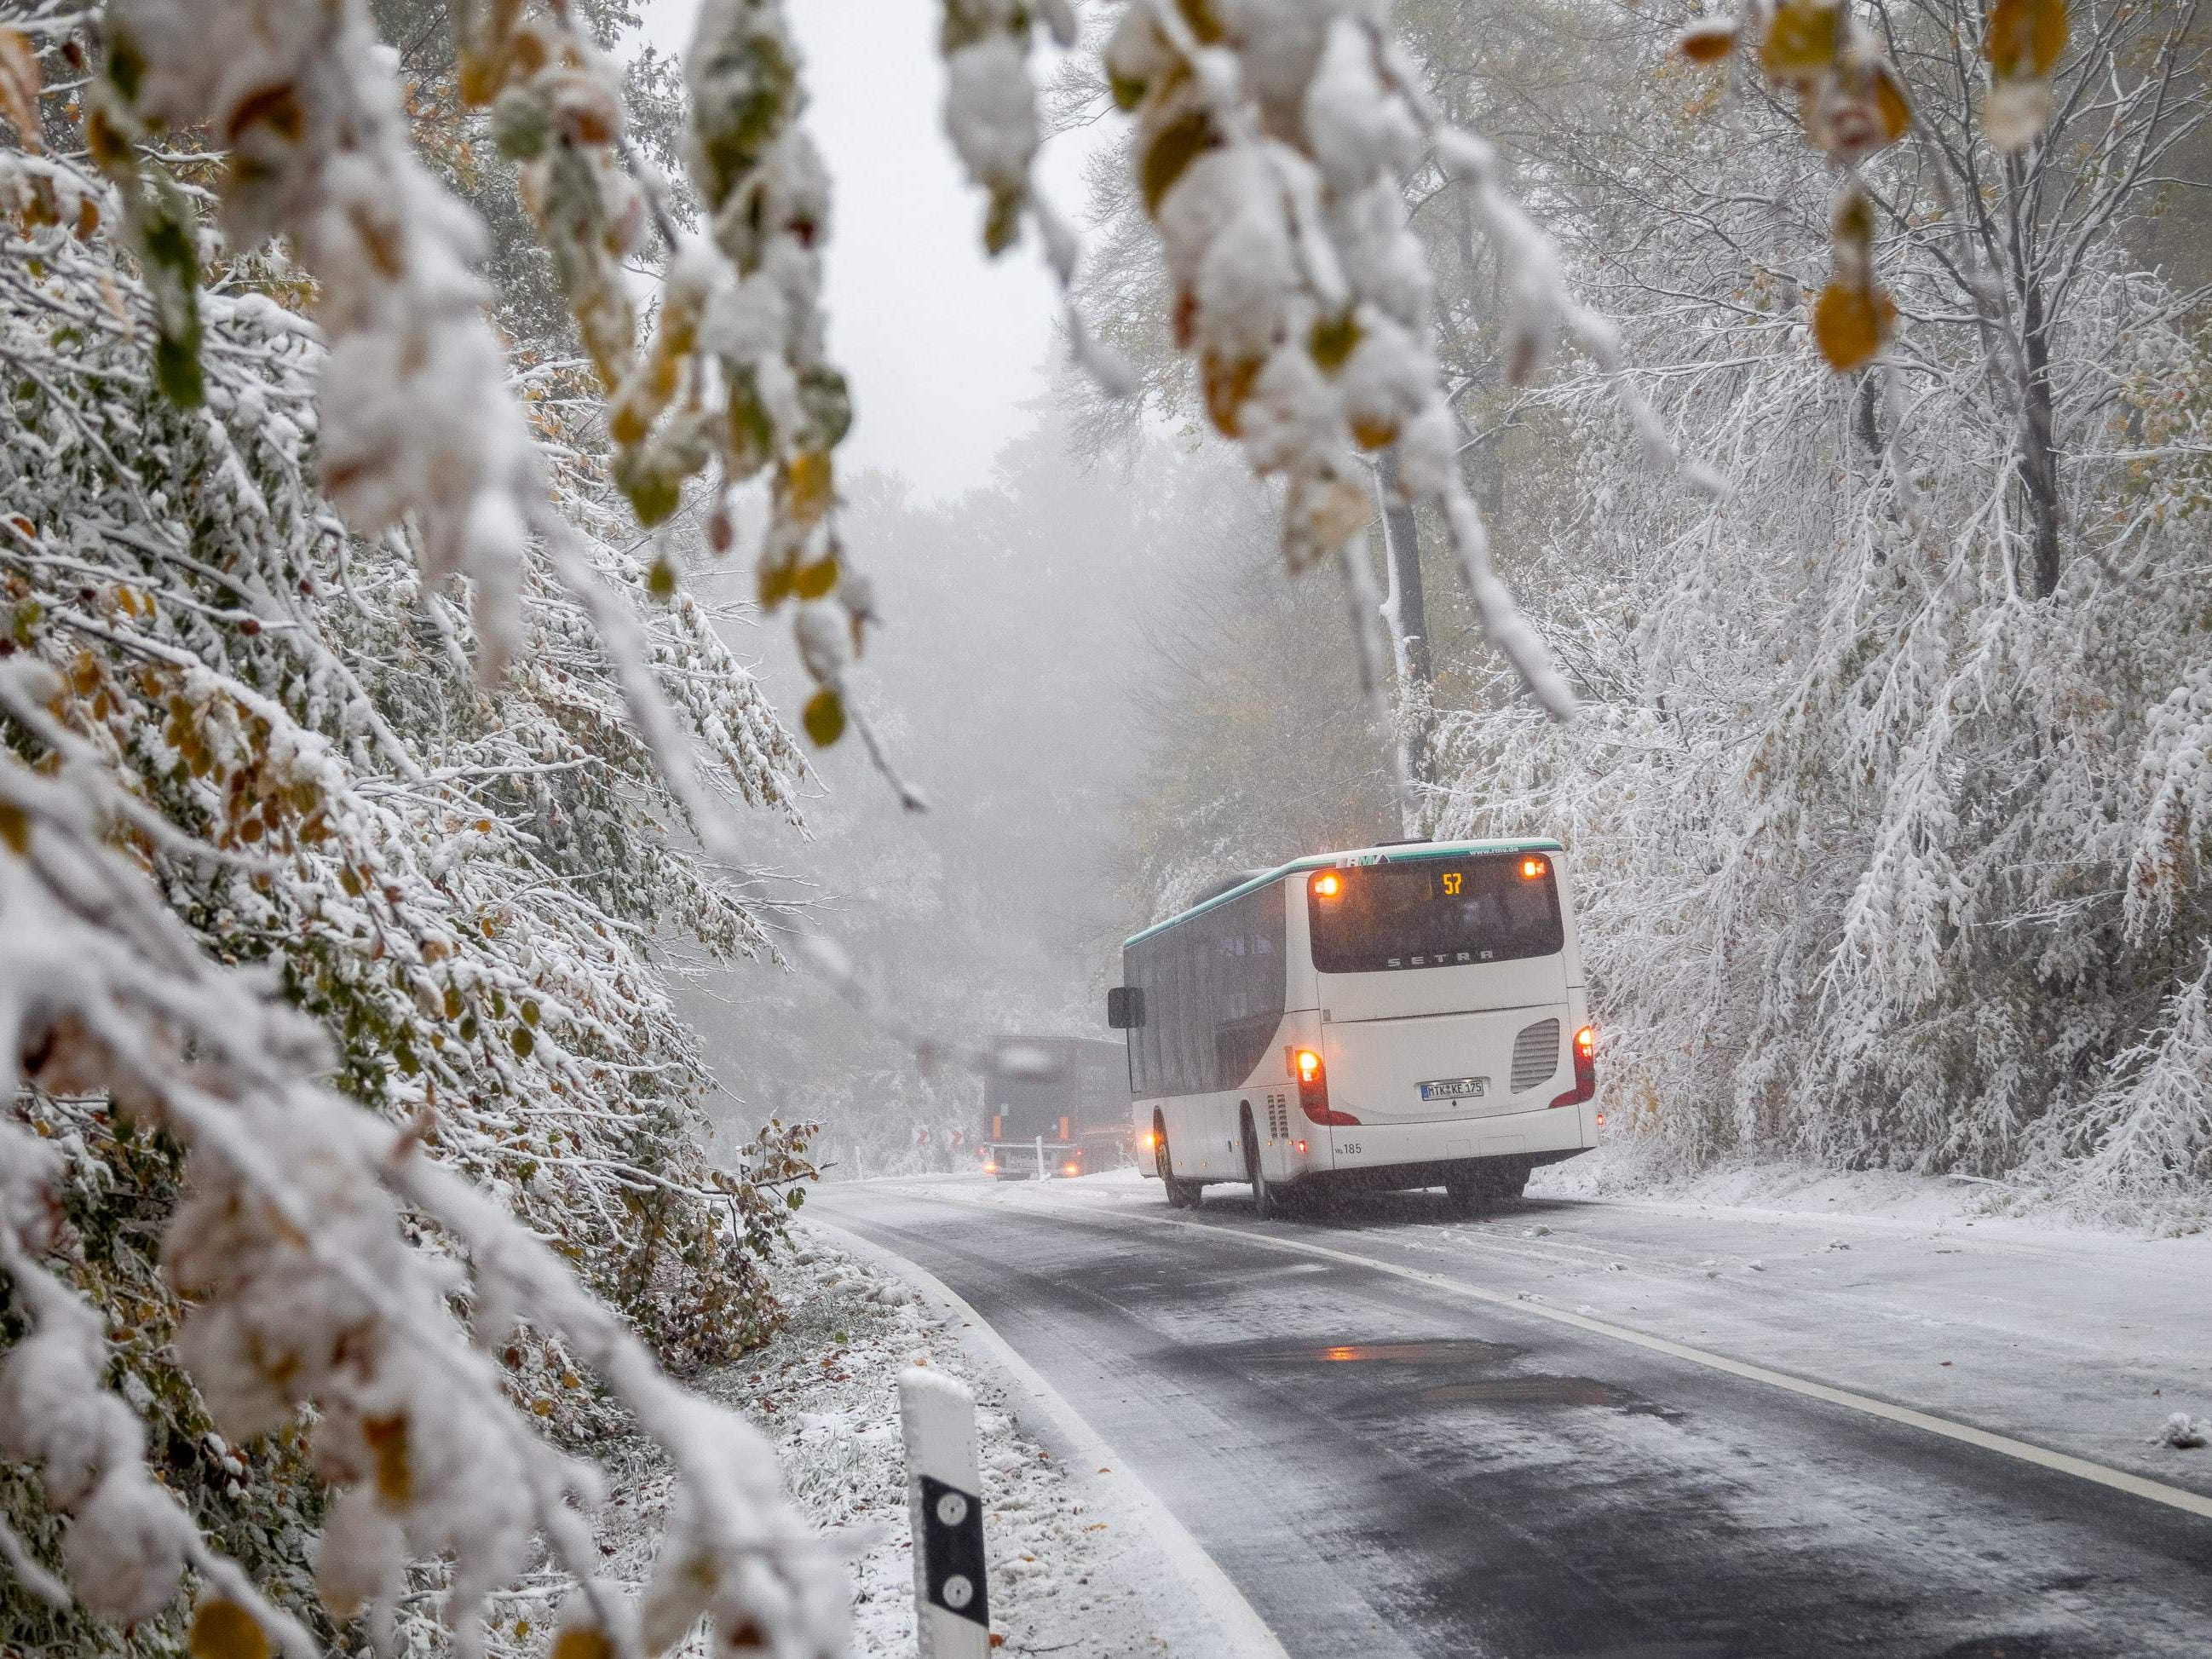 A bus and a truck drive through the first snow near Schmitten in the Taunus mountains, central Germany, on Oct. 30, 2018.